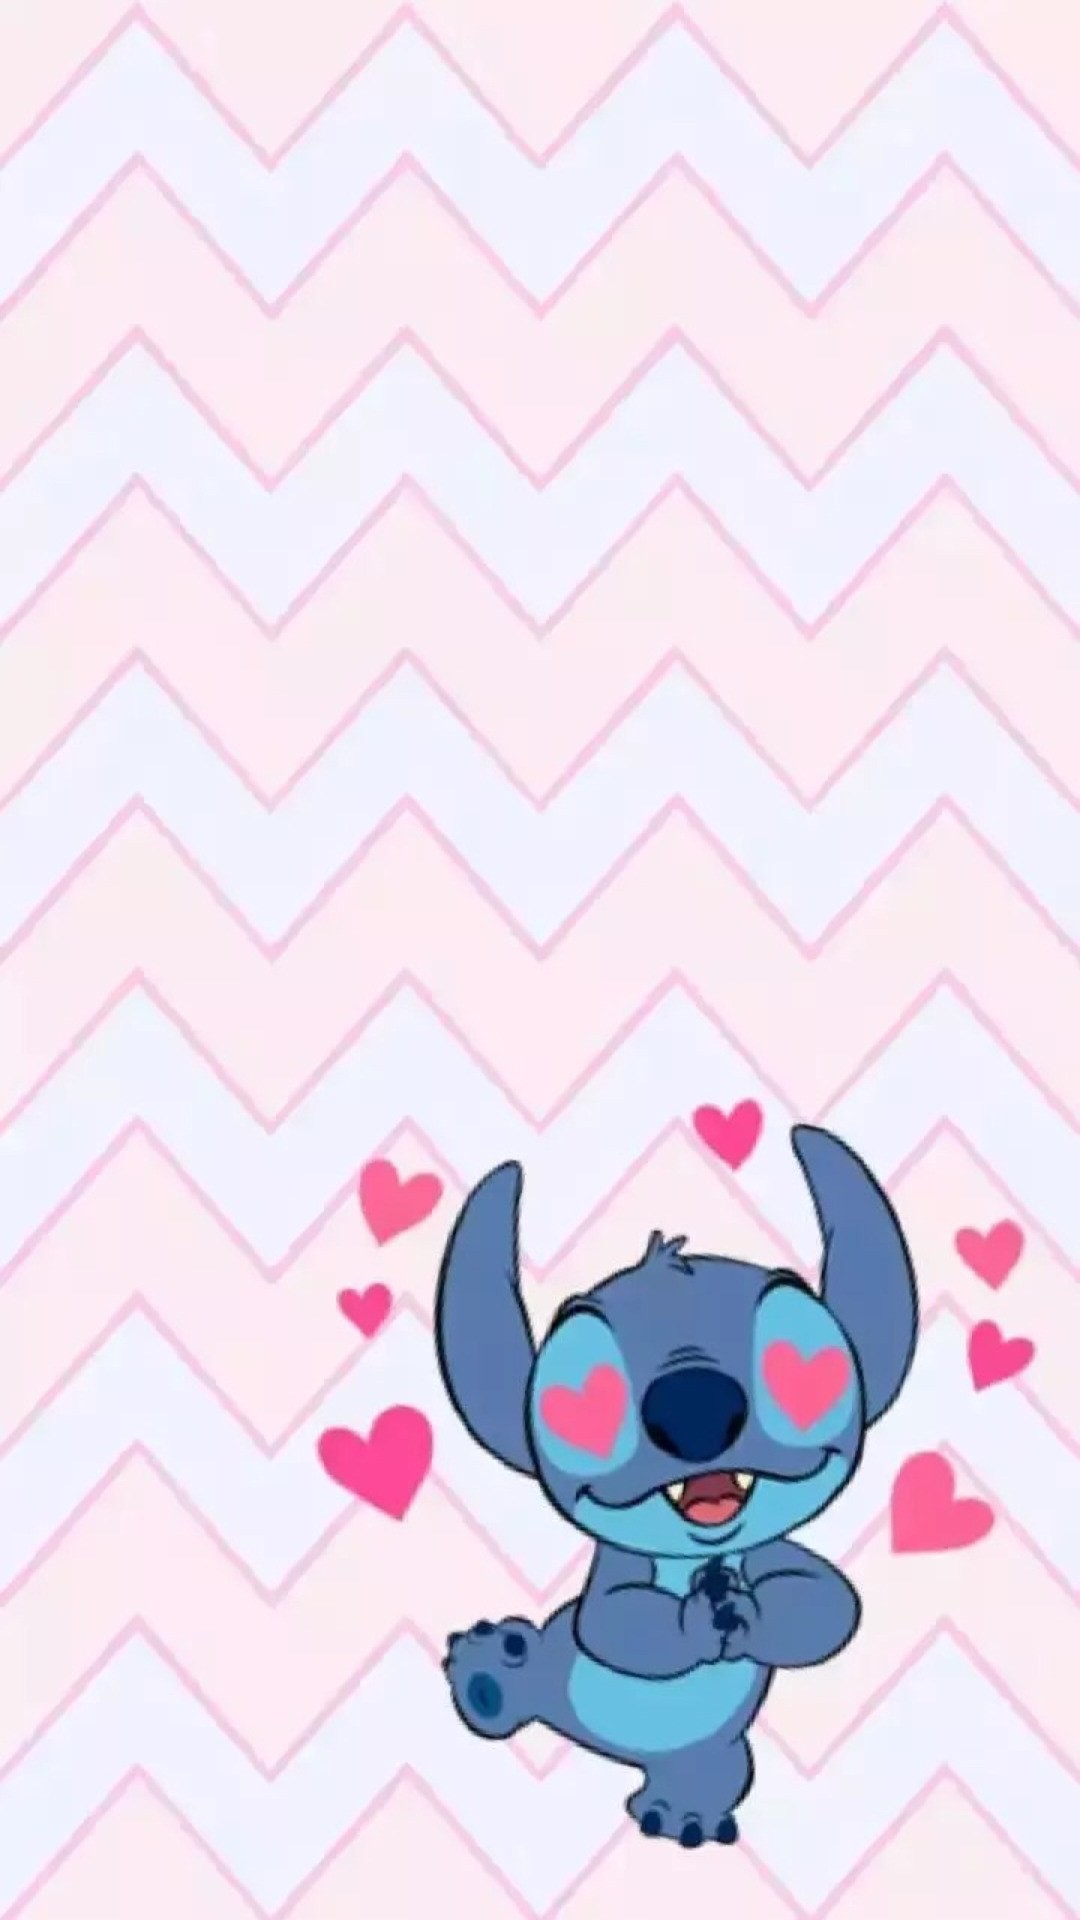 Stitch iPhone Wallpaper (69+ images)